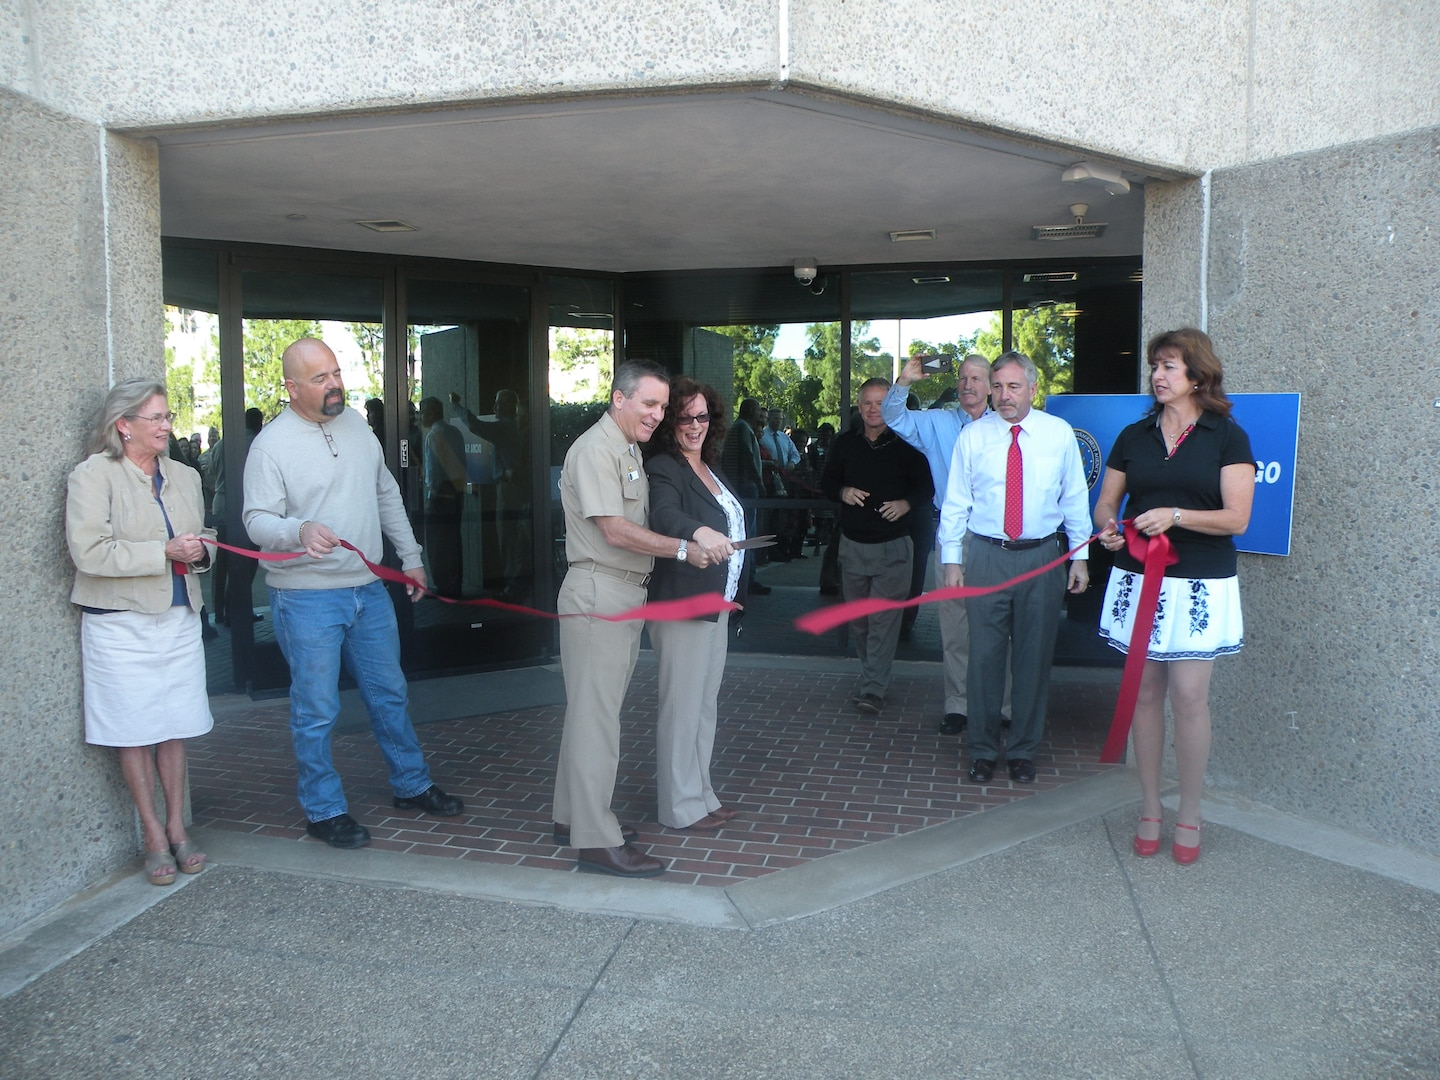 Navy Capt. Richard McCarthy, Defense Contract Management Agency San Diego commander, cuts the ribbon for the office's new facility. Three of the longest serving office employees — Jane Morales, Gabriel Tapia and Rachelle Munz — held the ribbon in celebration of their 75 combined years at the previous facility.